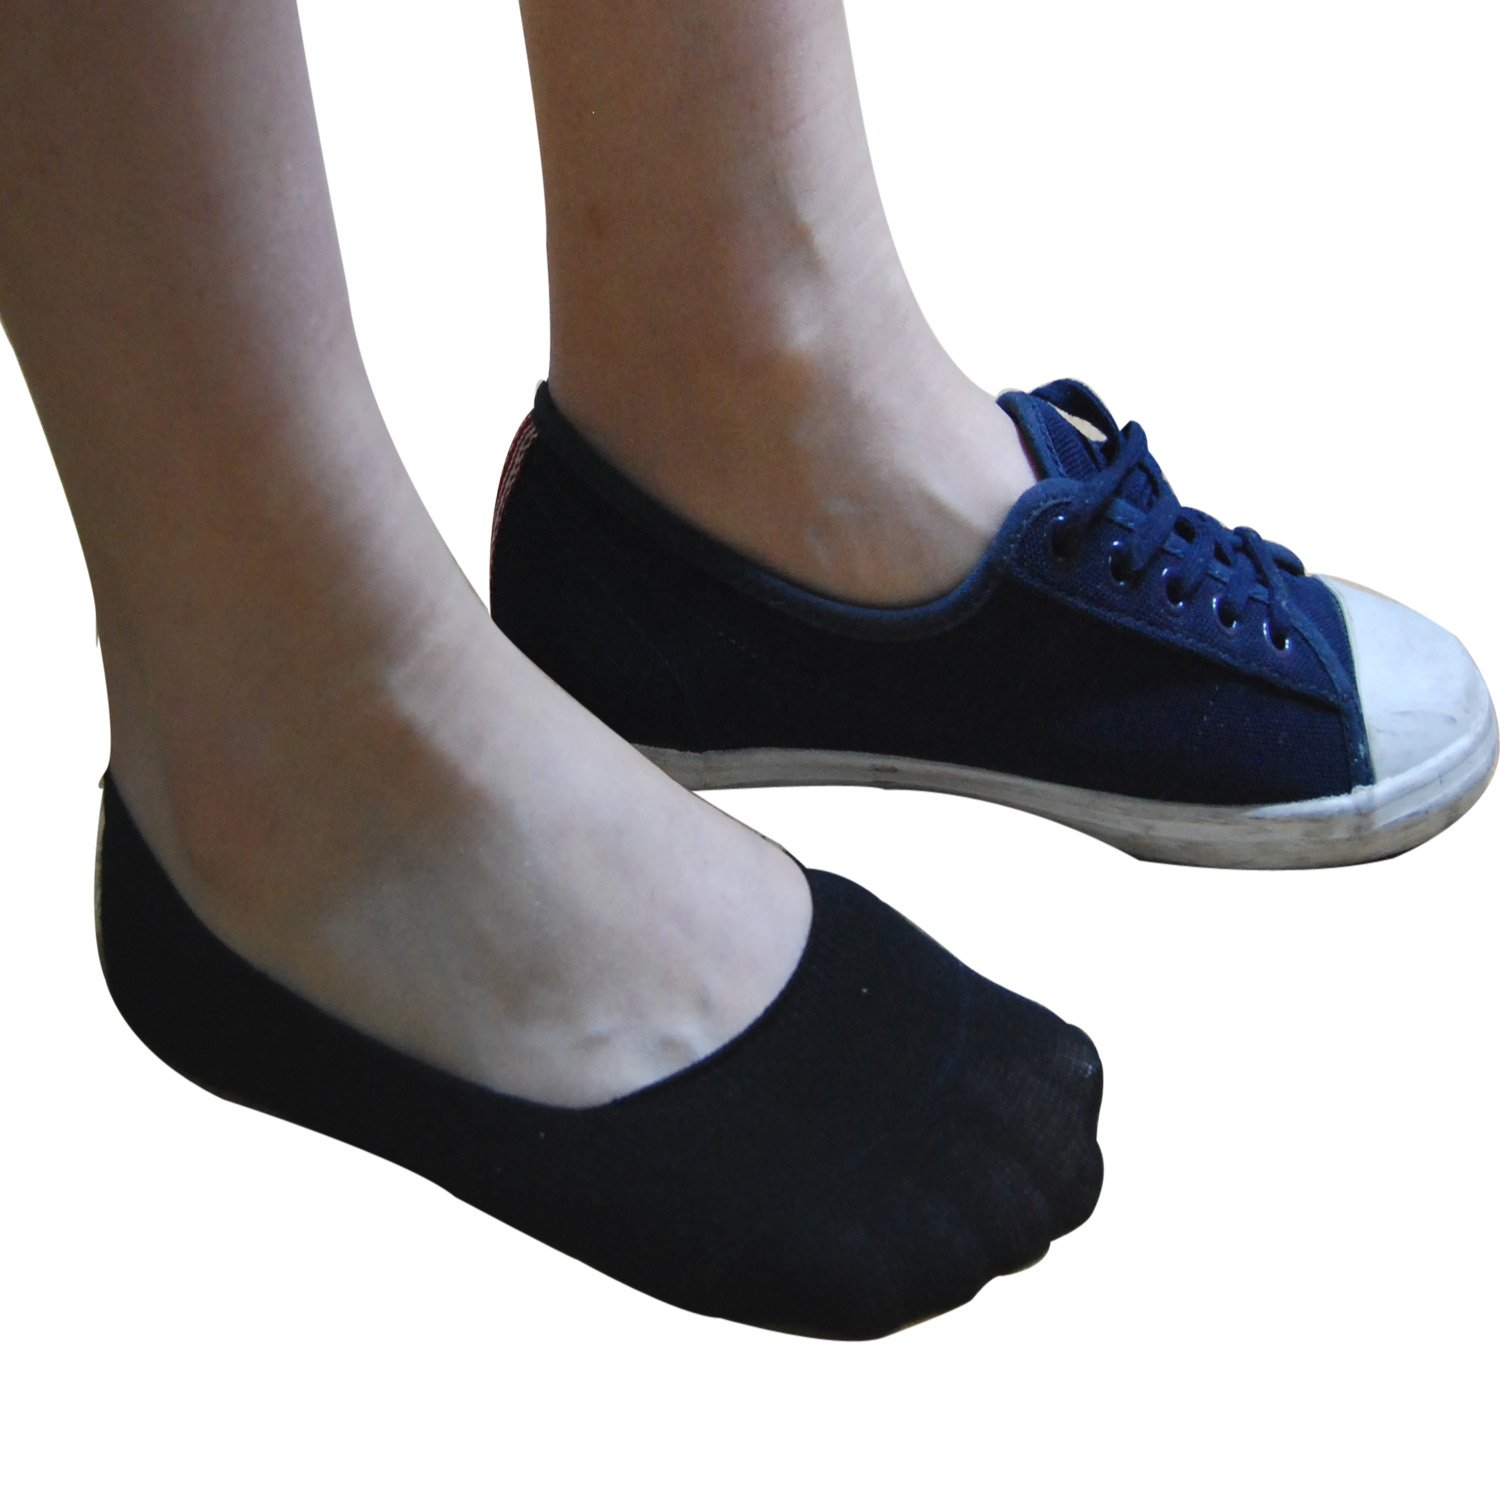 TETIBA Womens Cotton Invisible No Show Trainer Socks With Double Elastic Band